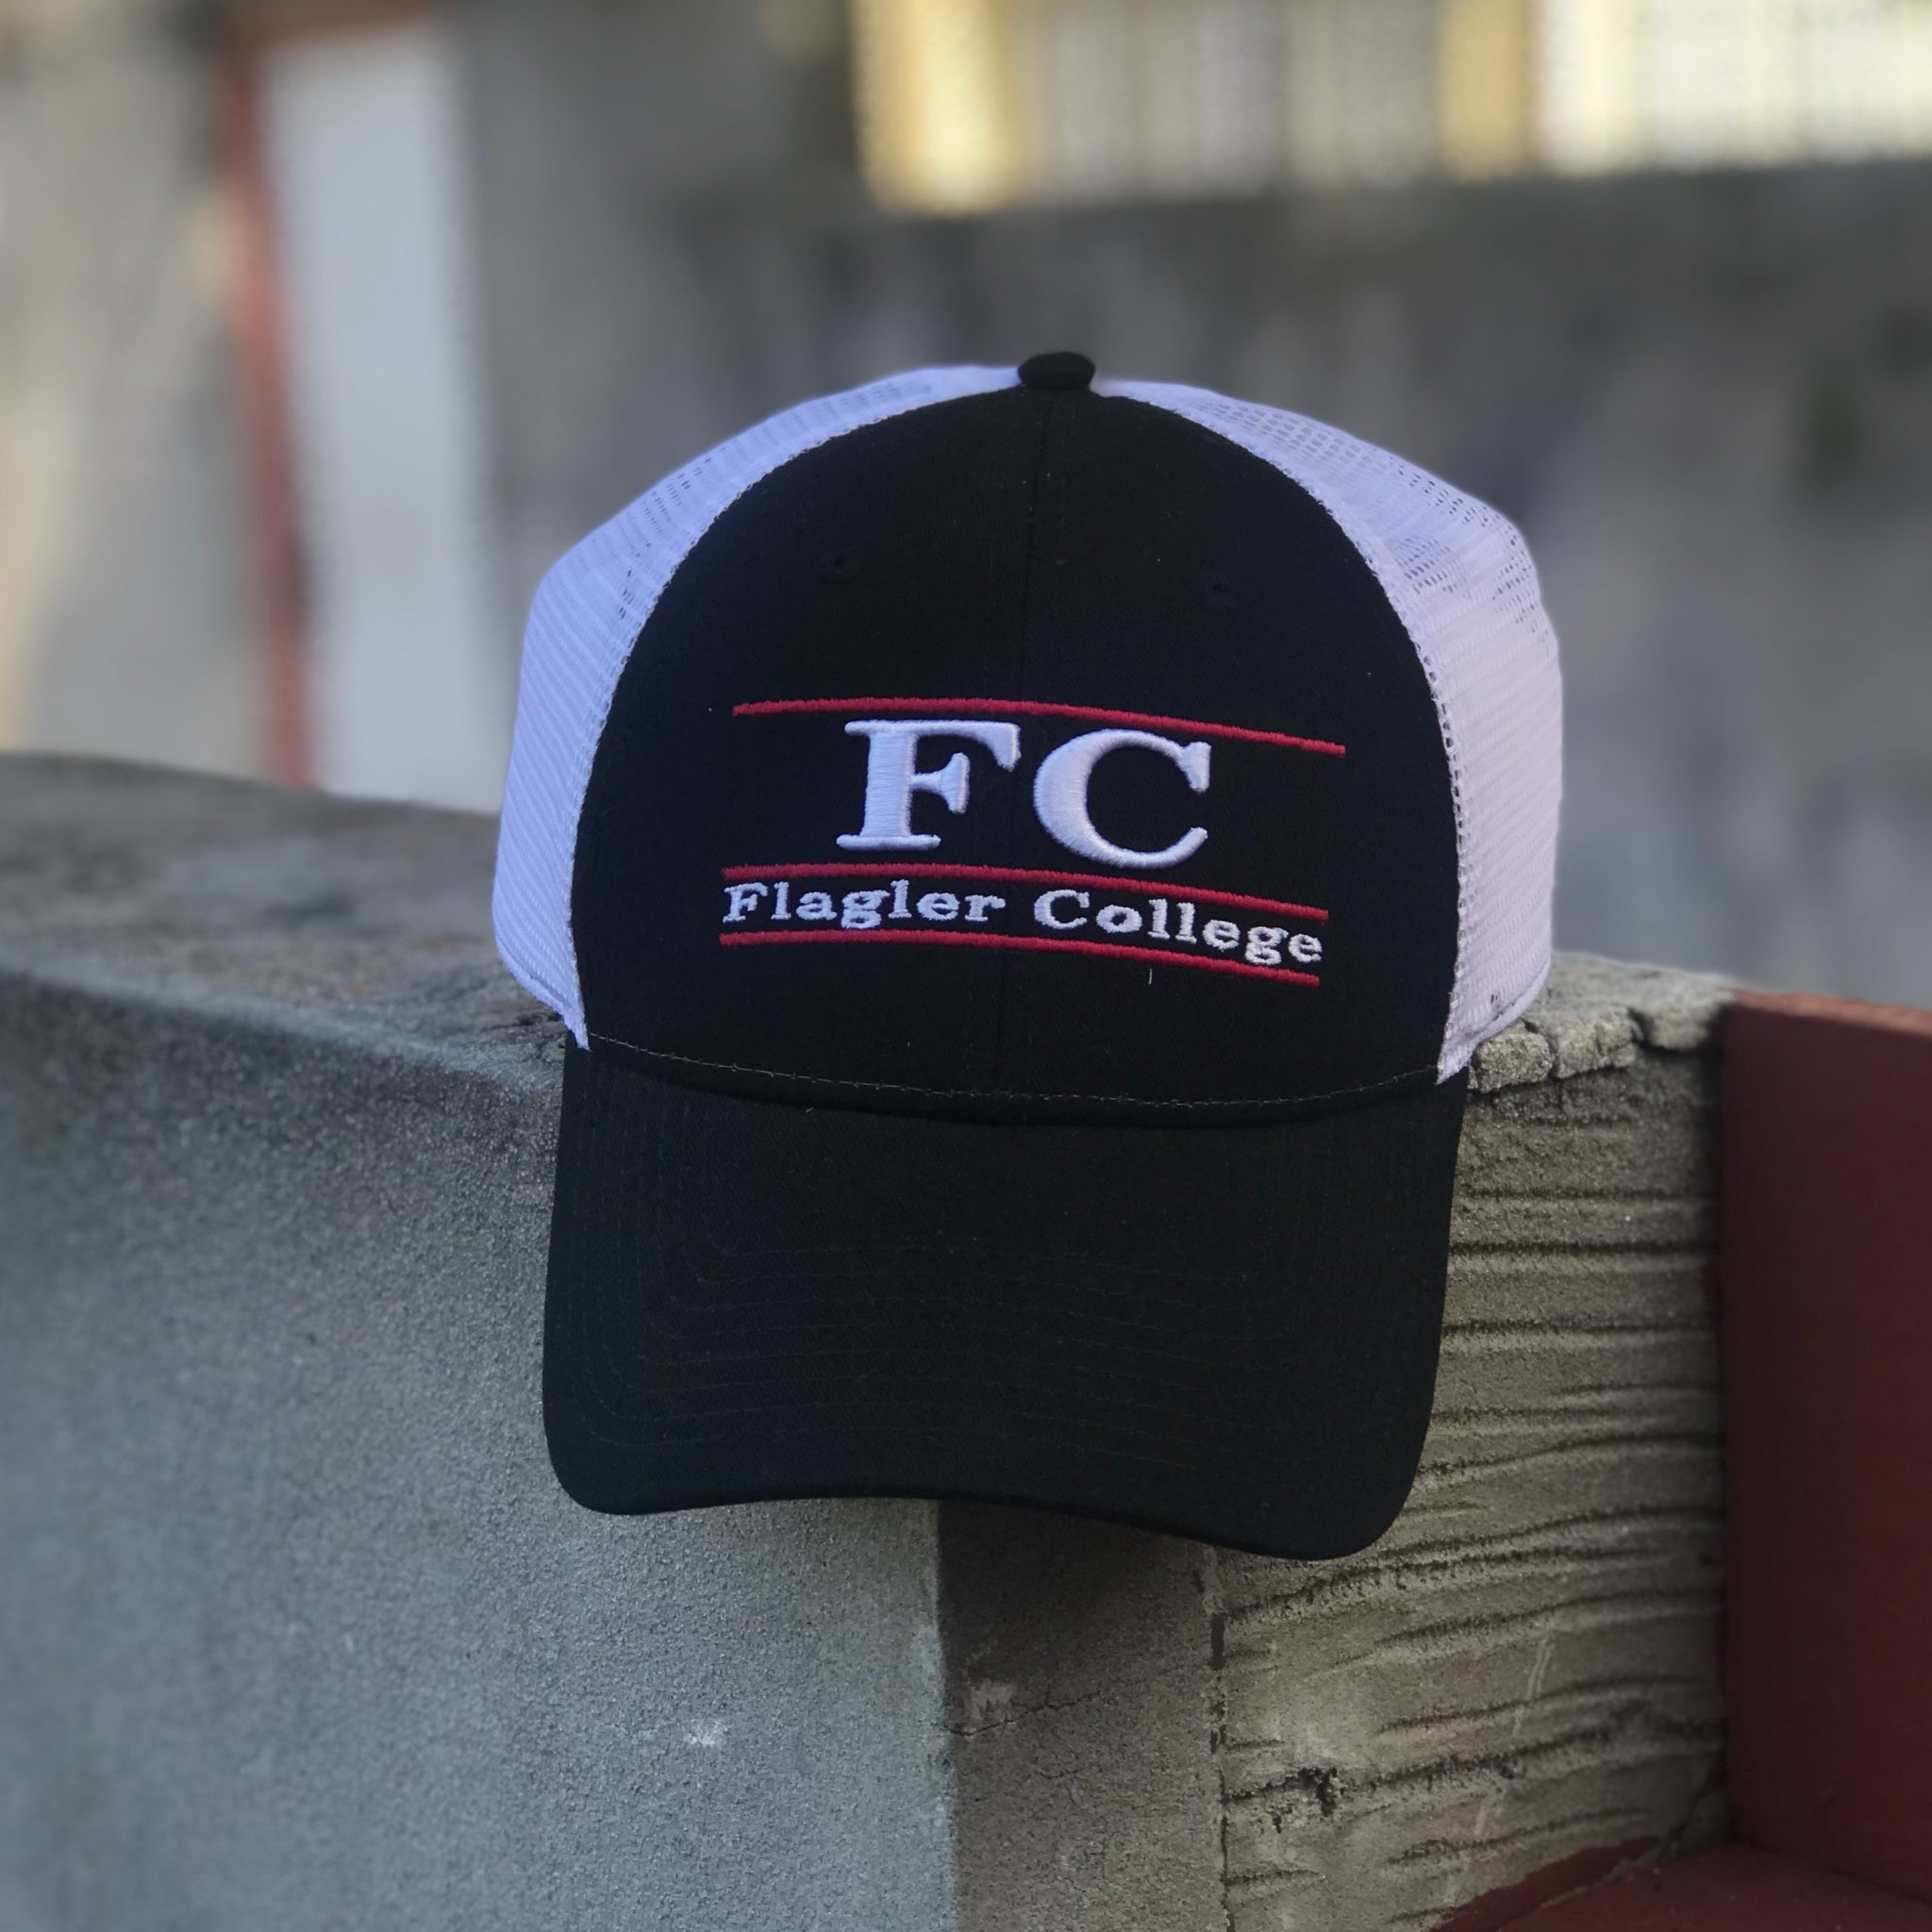 black front and white mesh in the back. FC and Flagler college are embroidered in white with red lines underlining words